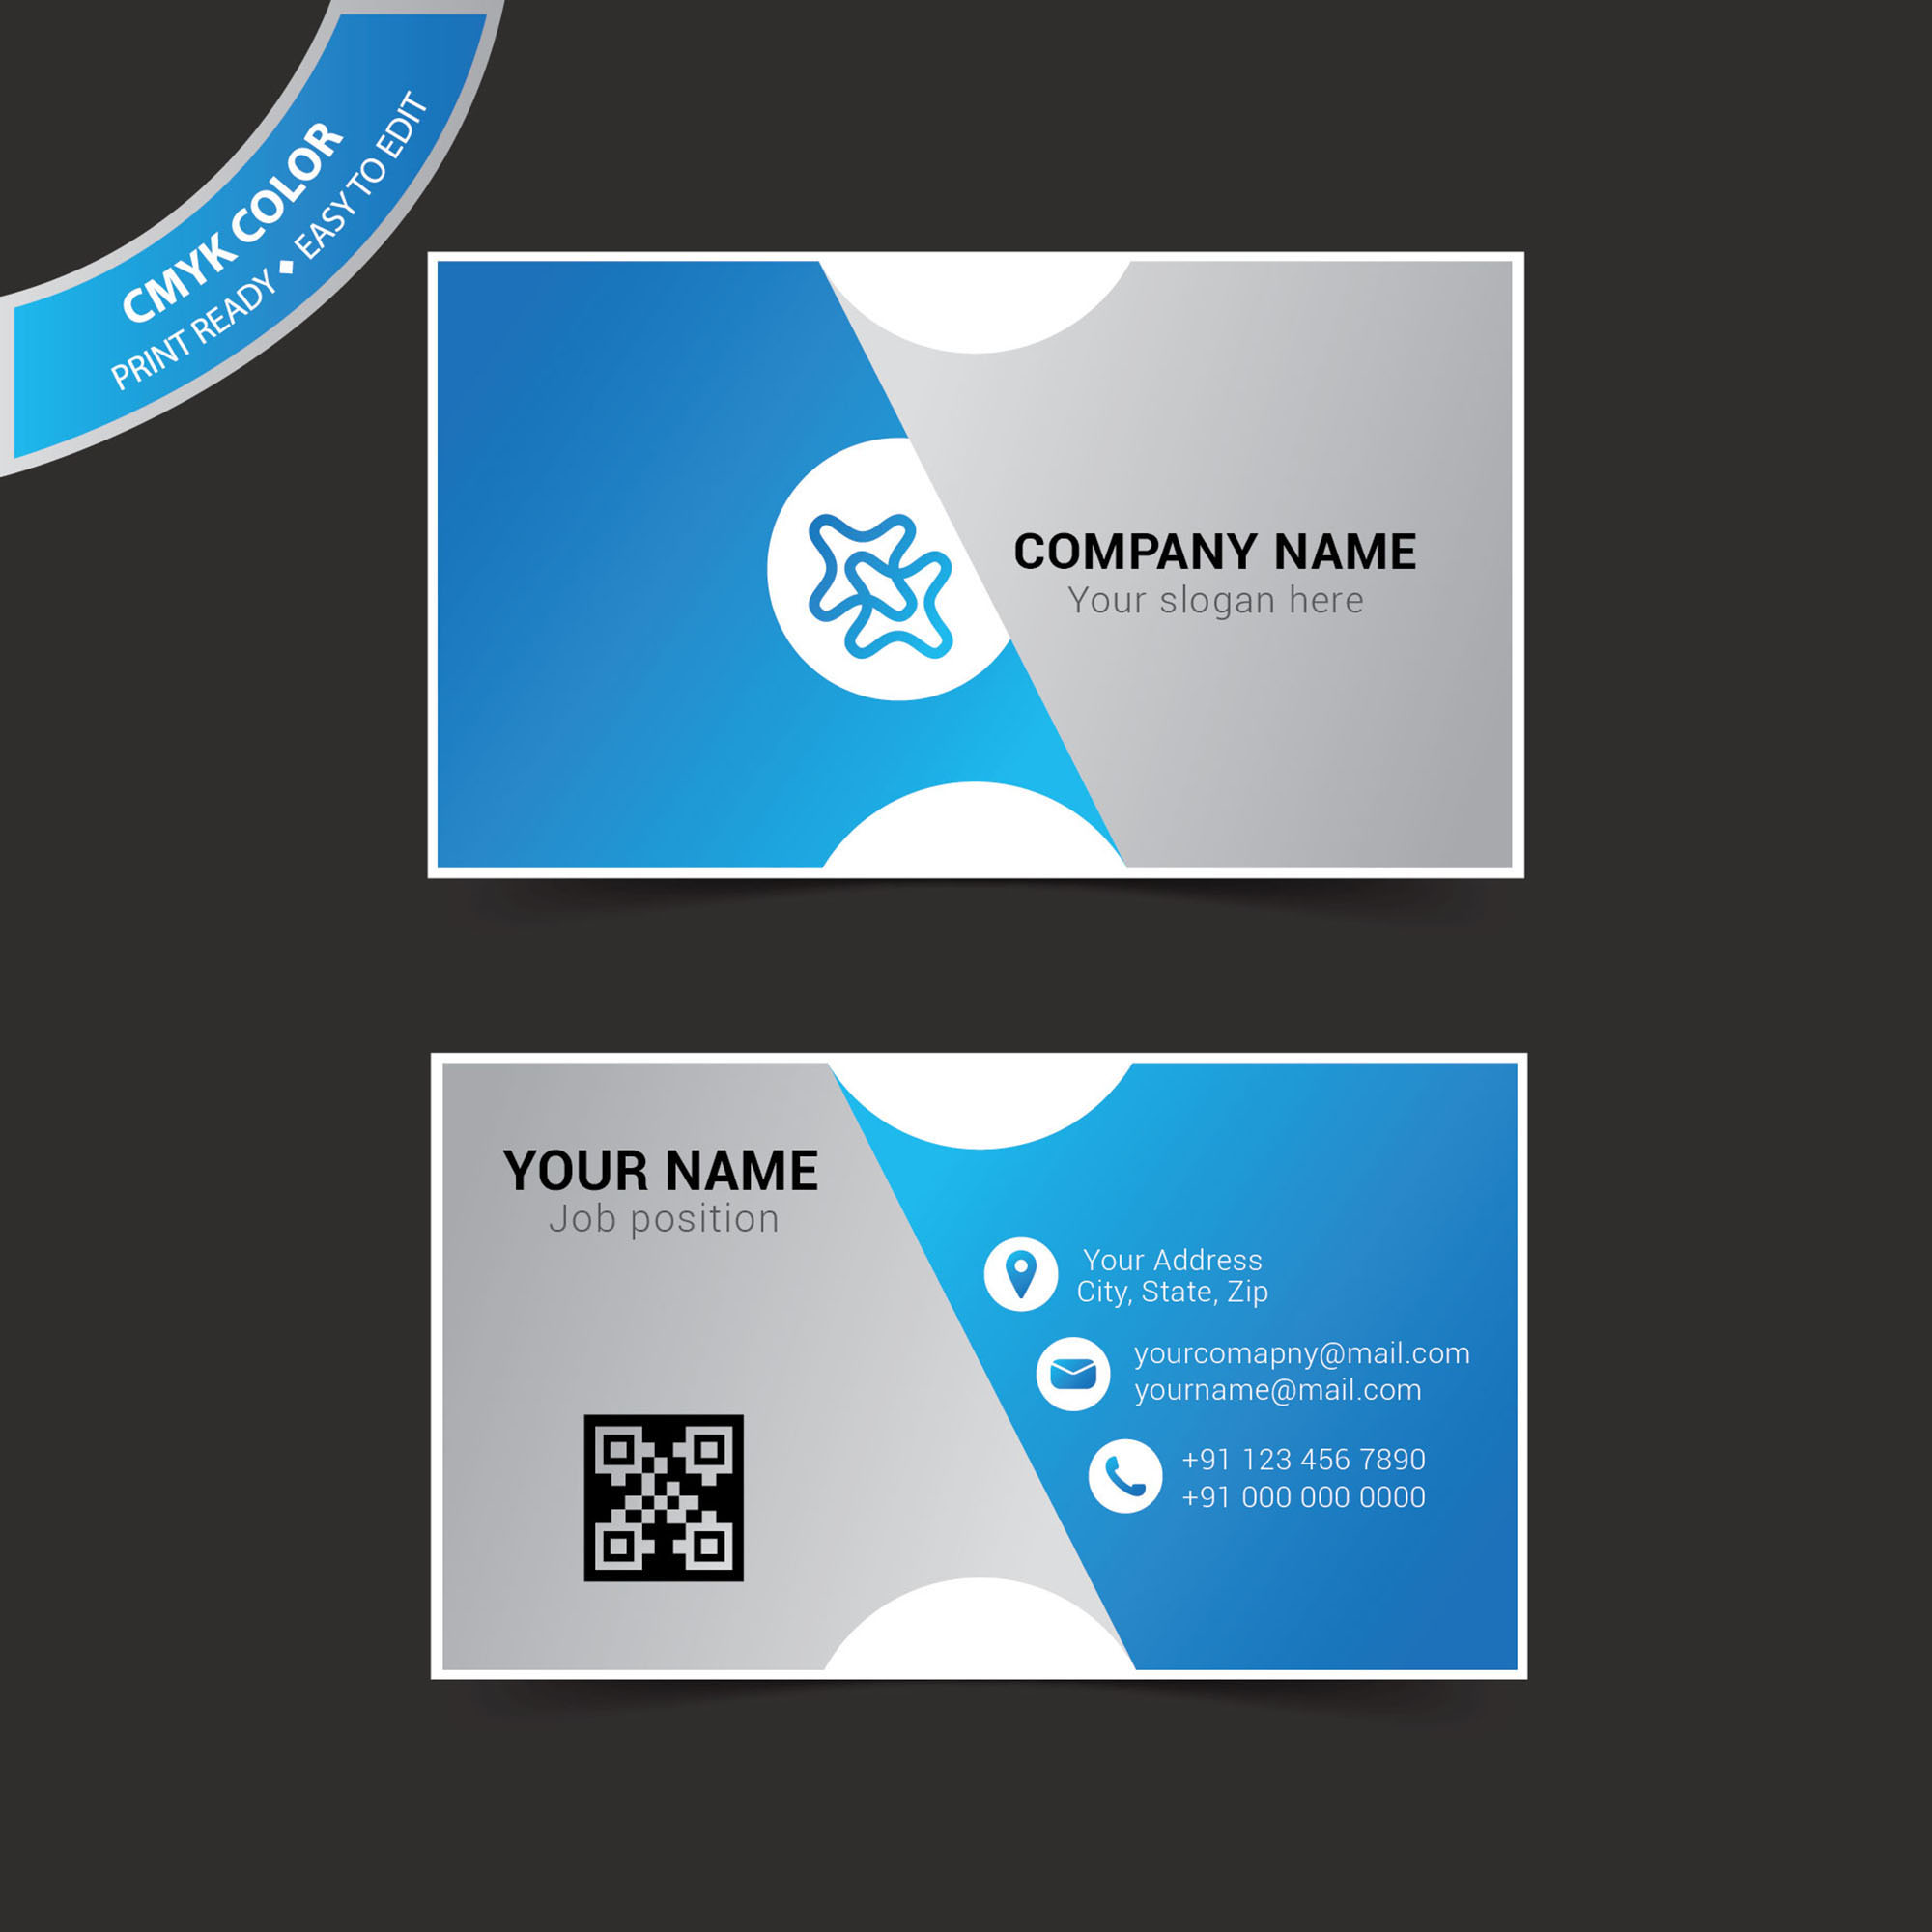 Business card template illustrator free vector wisxi abstract business card design business creative graphic layout template wajeb Choice Image